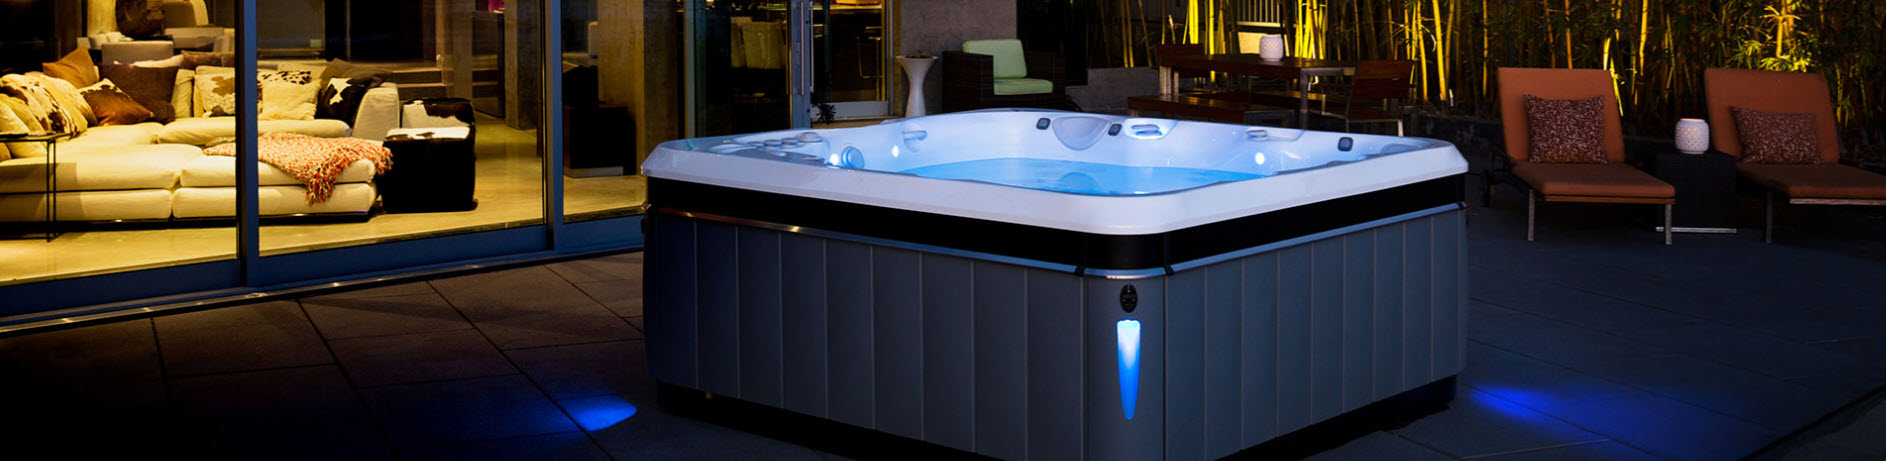 3 Ways a Dip in the Hot Tub Can Rejuvenate You, Used Spas Near Tea SD